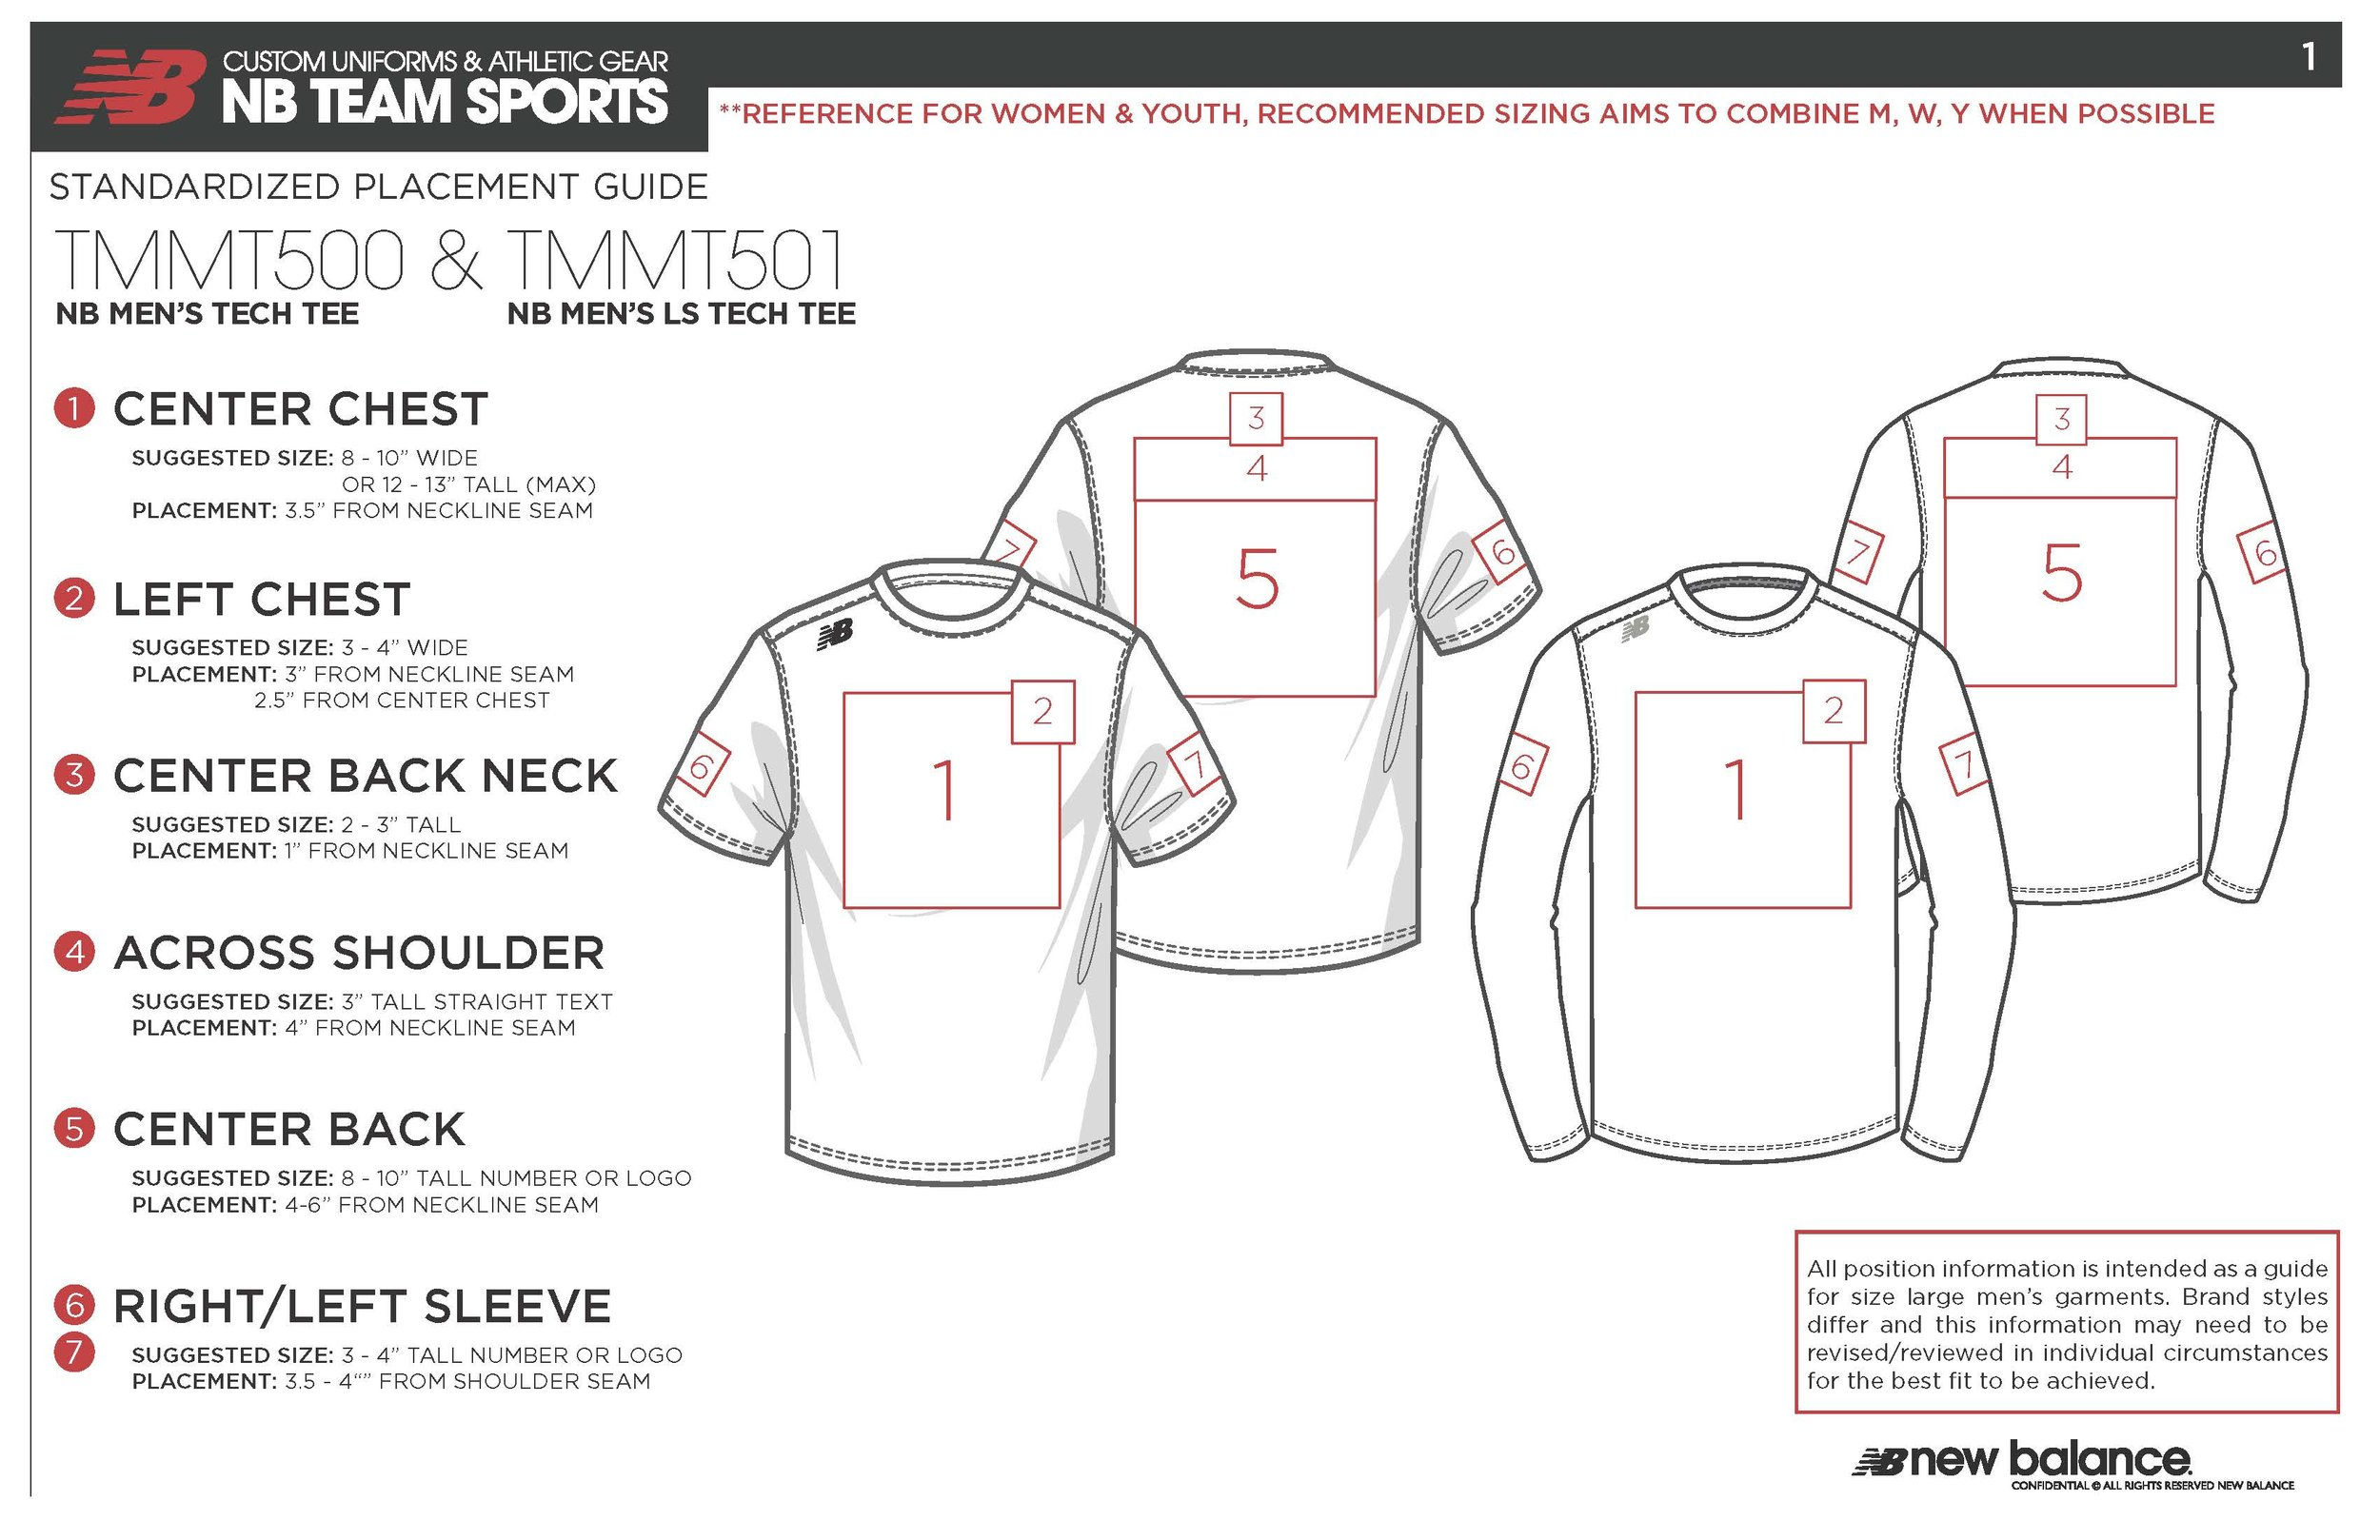 TEAMWEAR_Standardized Placement Guide Final_Page_1.jpg